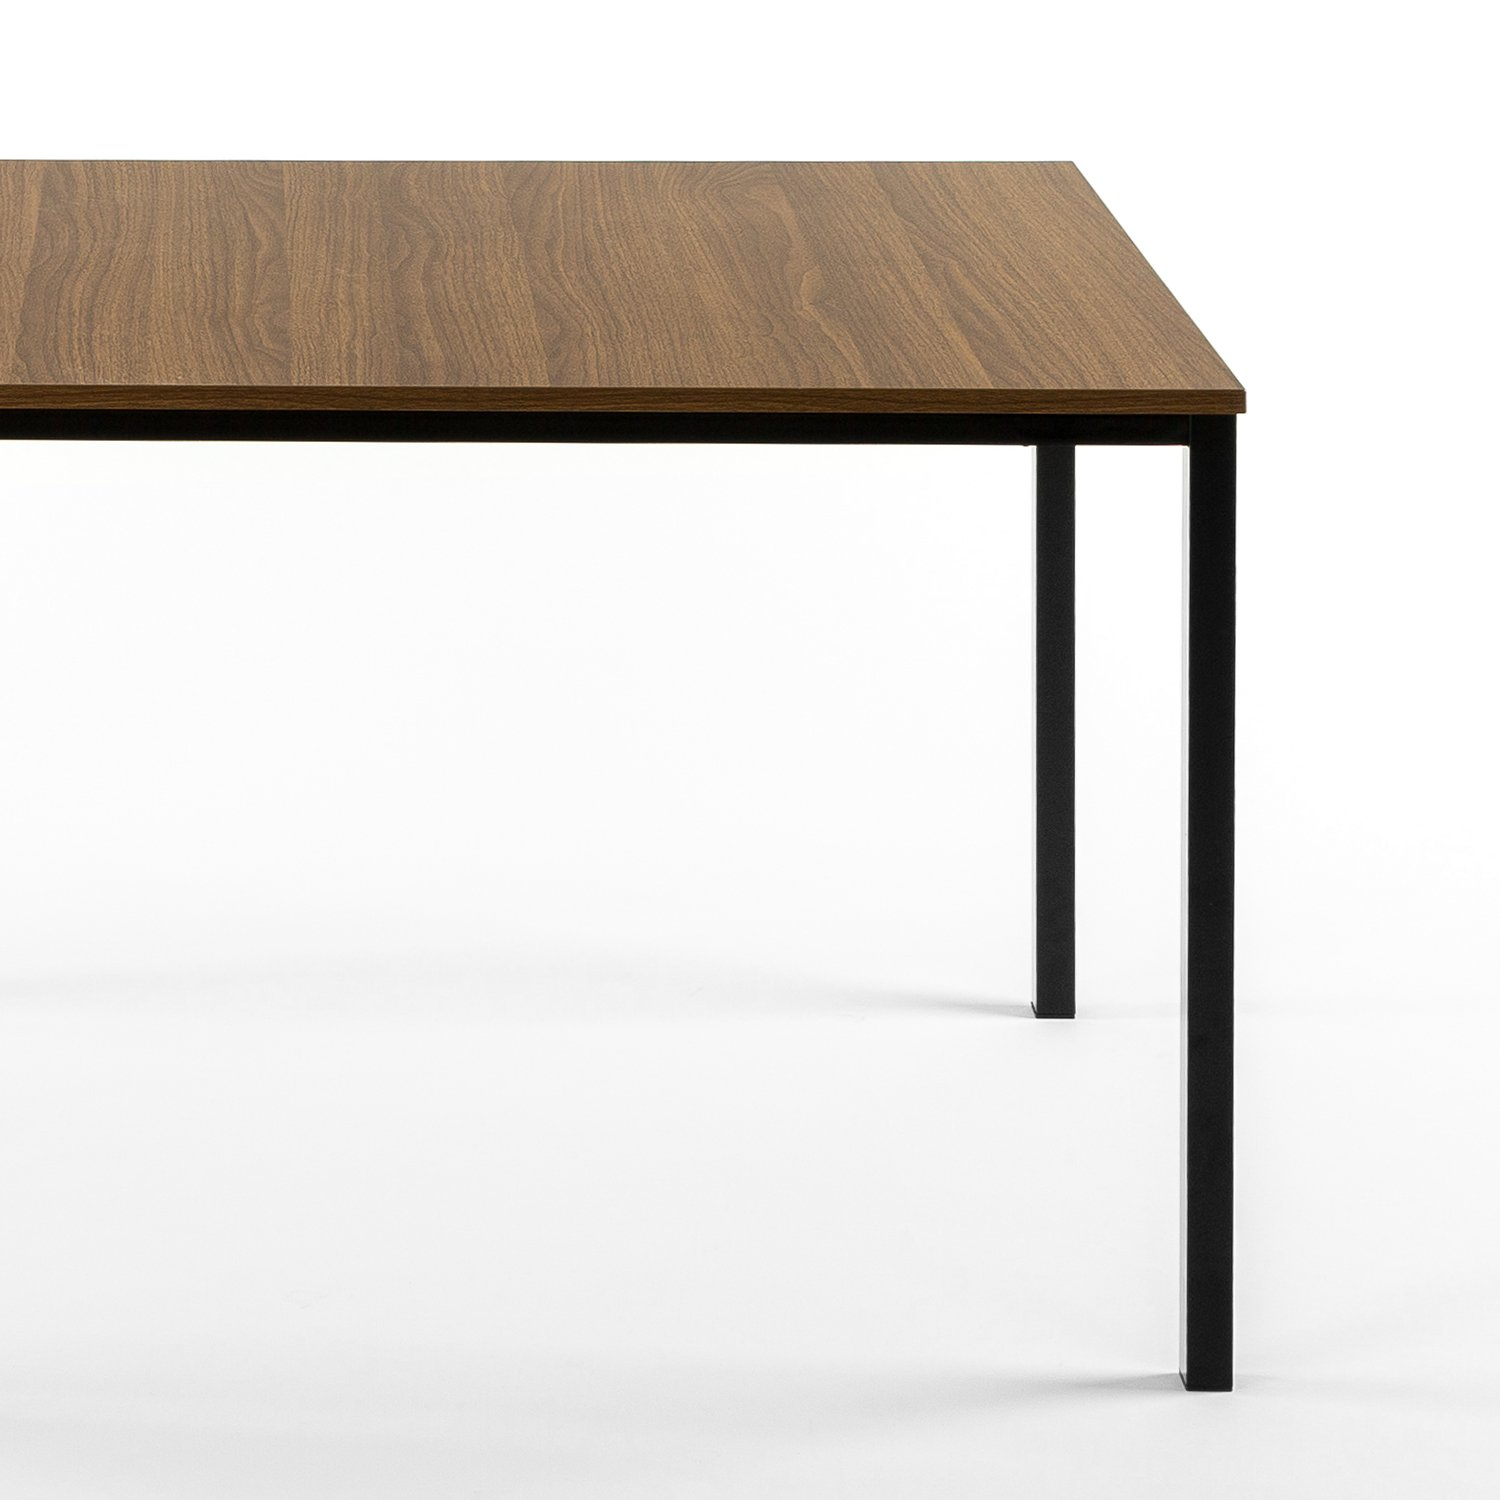 Zinus Modern Studio Collection Soho Dining Table/Office Desk/Computer Desk/Table Only, Brown by Zinus (Image #5)